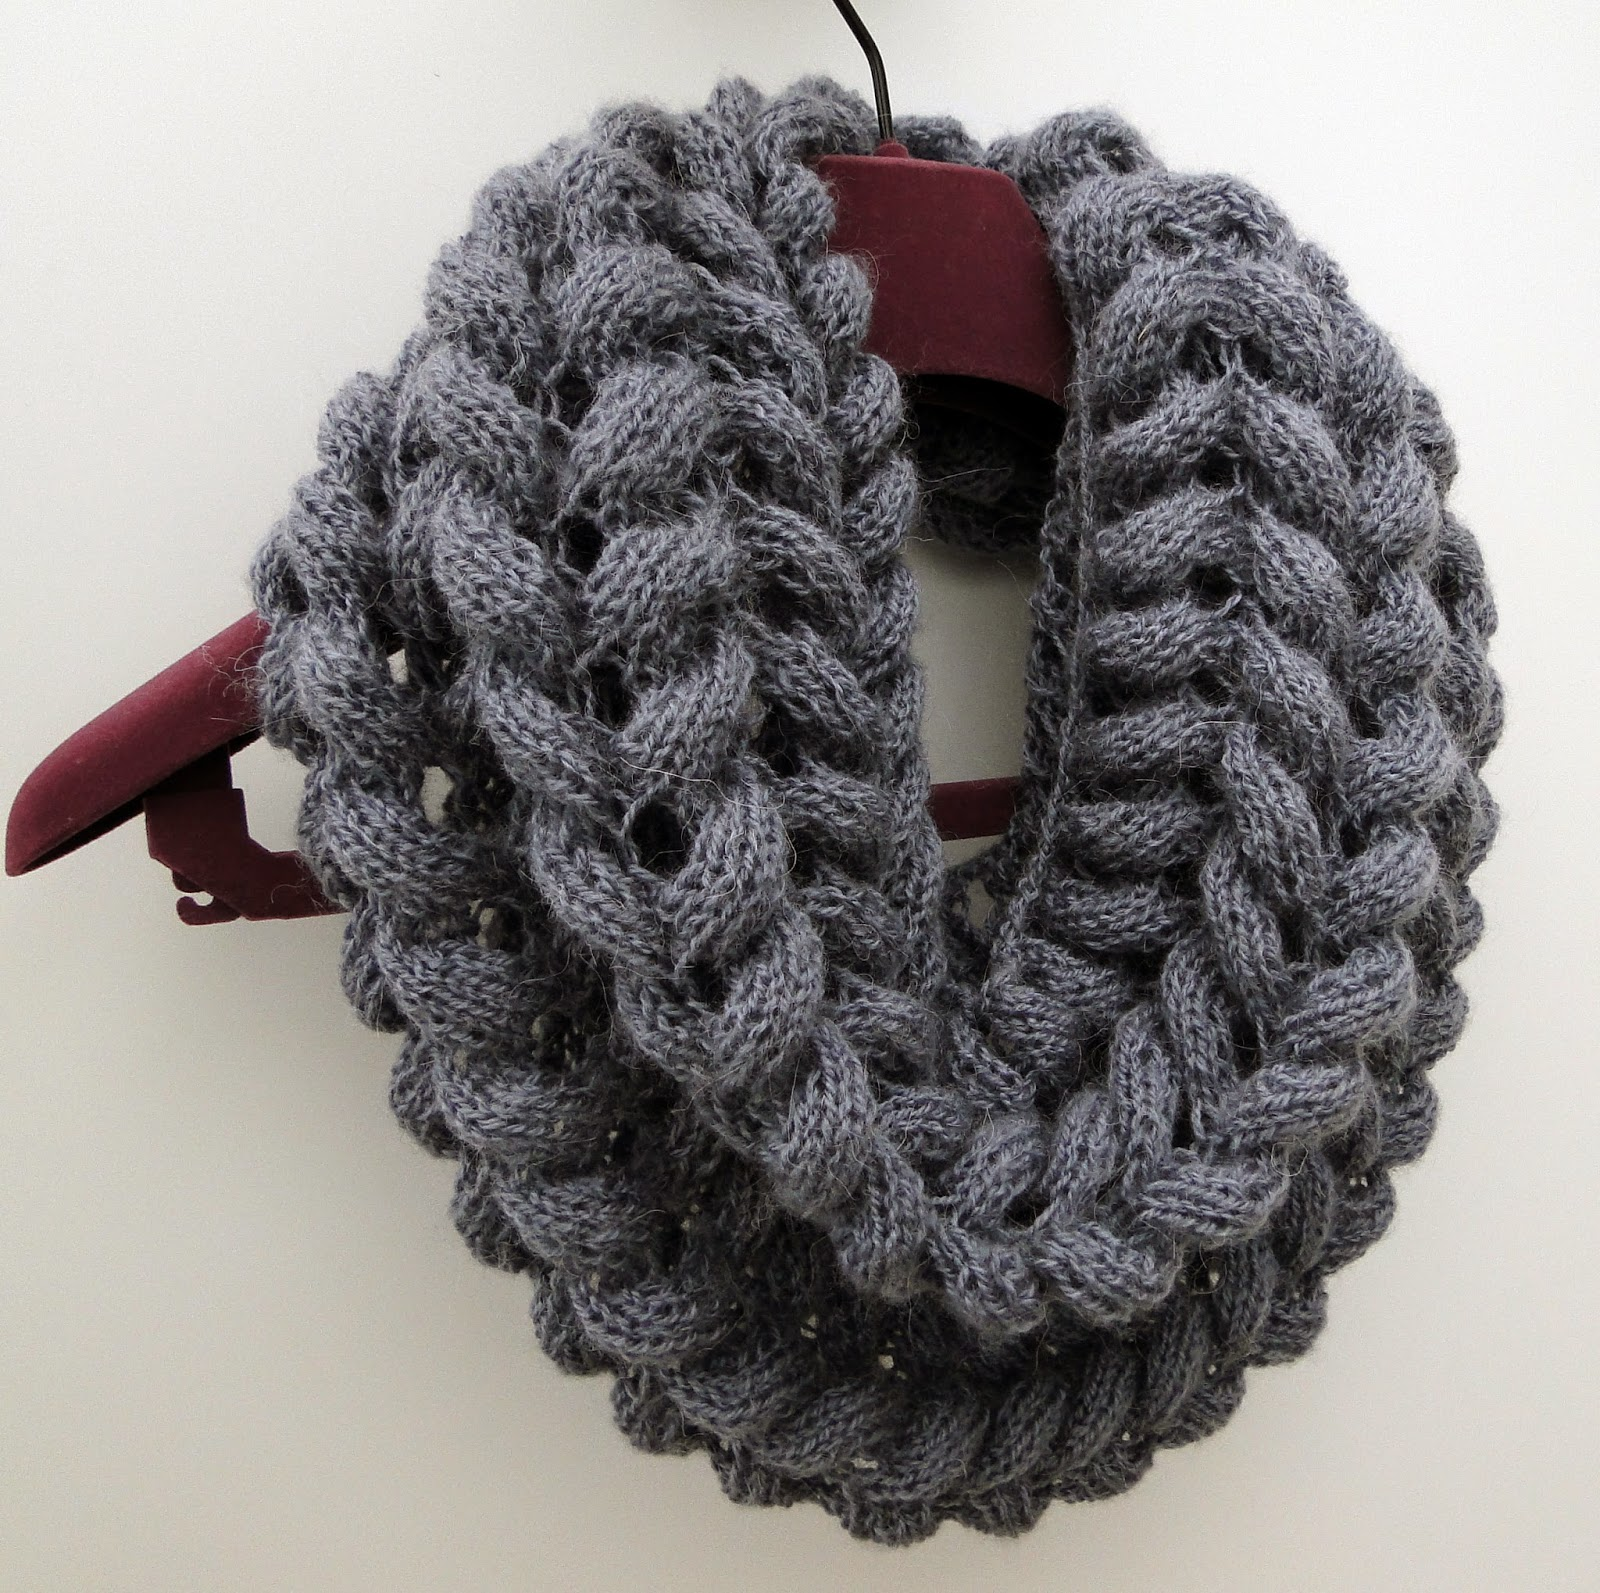 3 Rabbits Patterns: Scarf Cowl Knitting Pattern